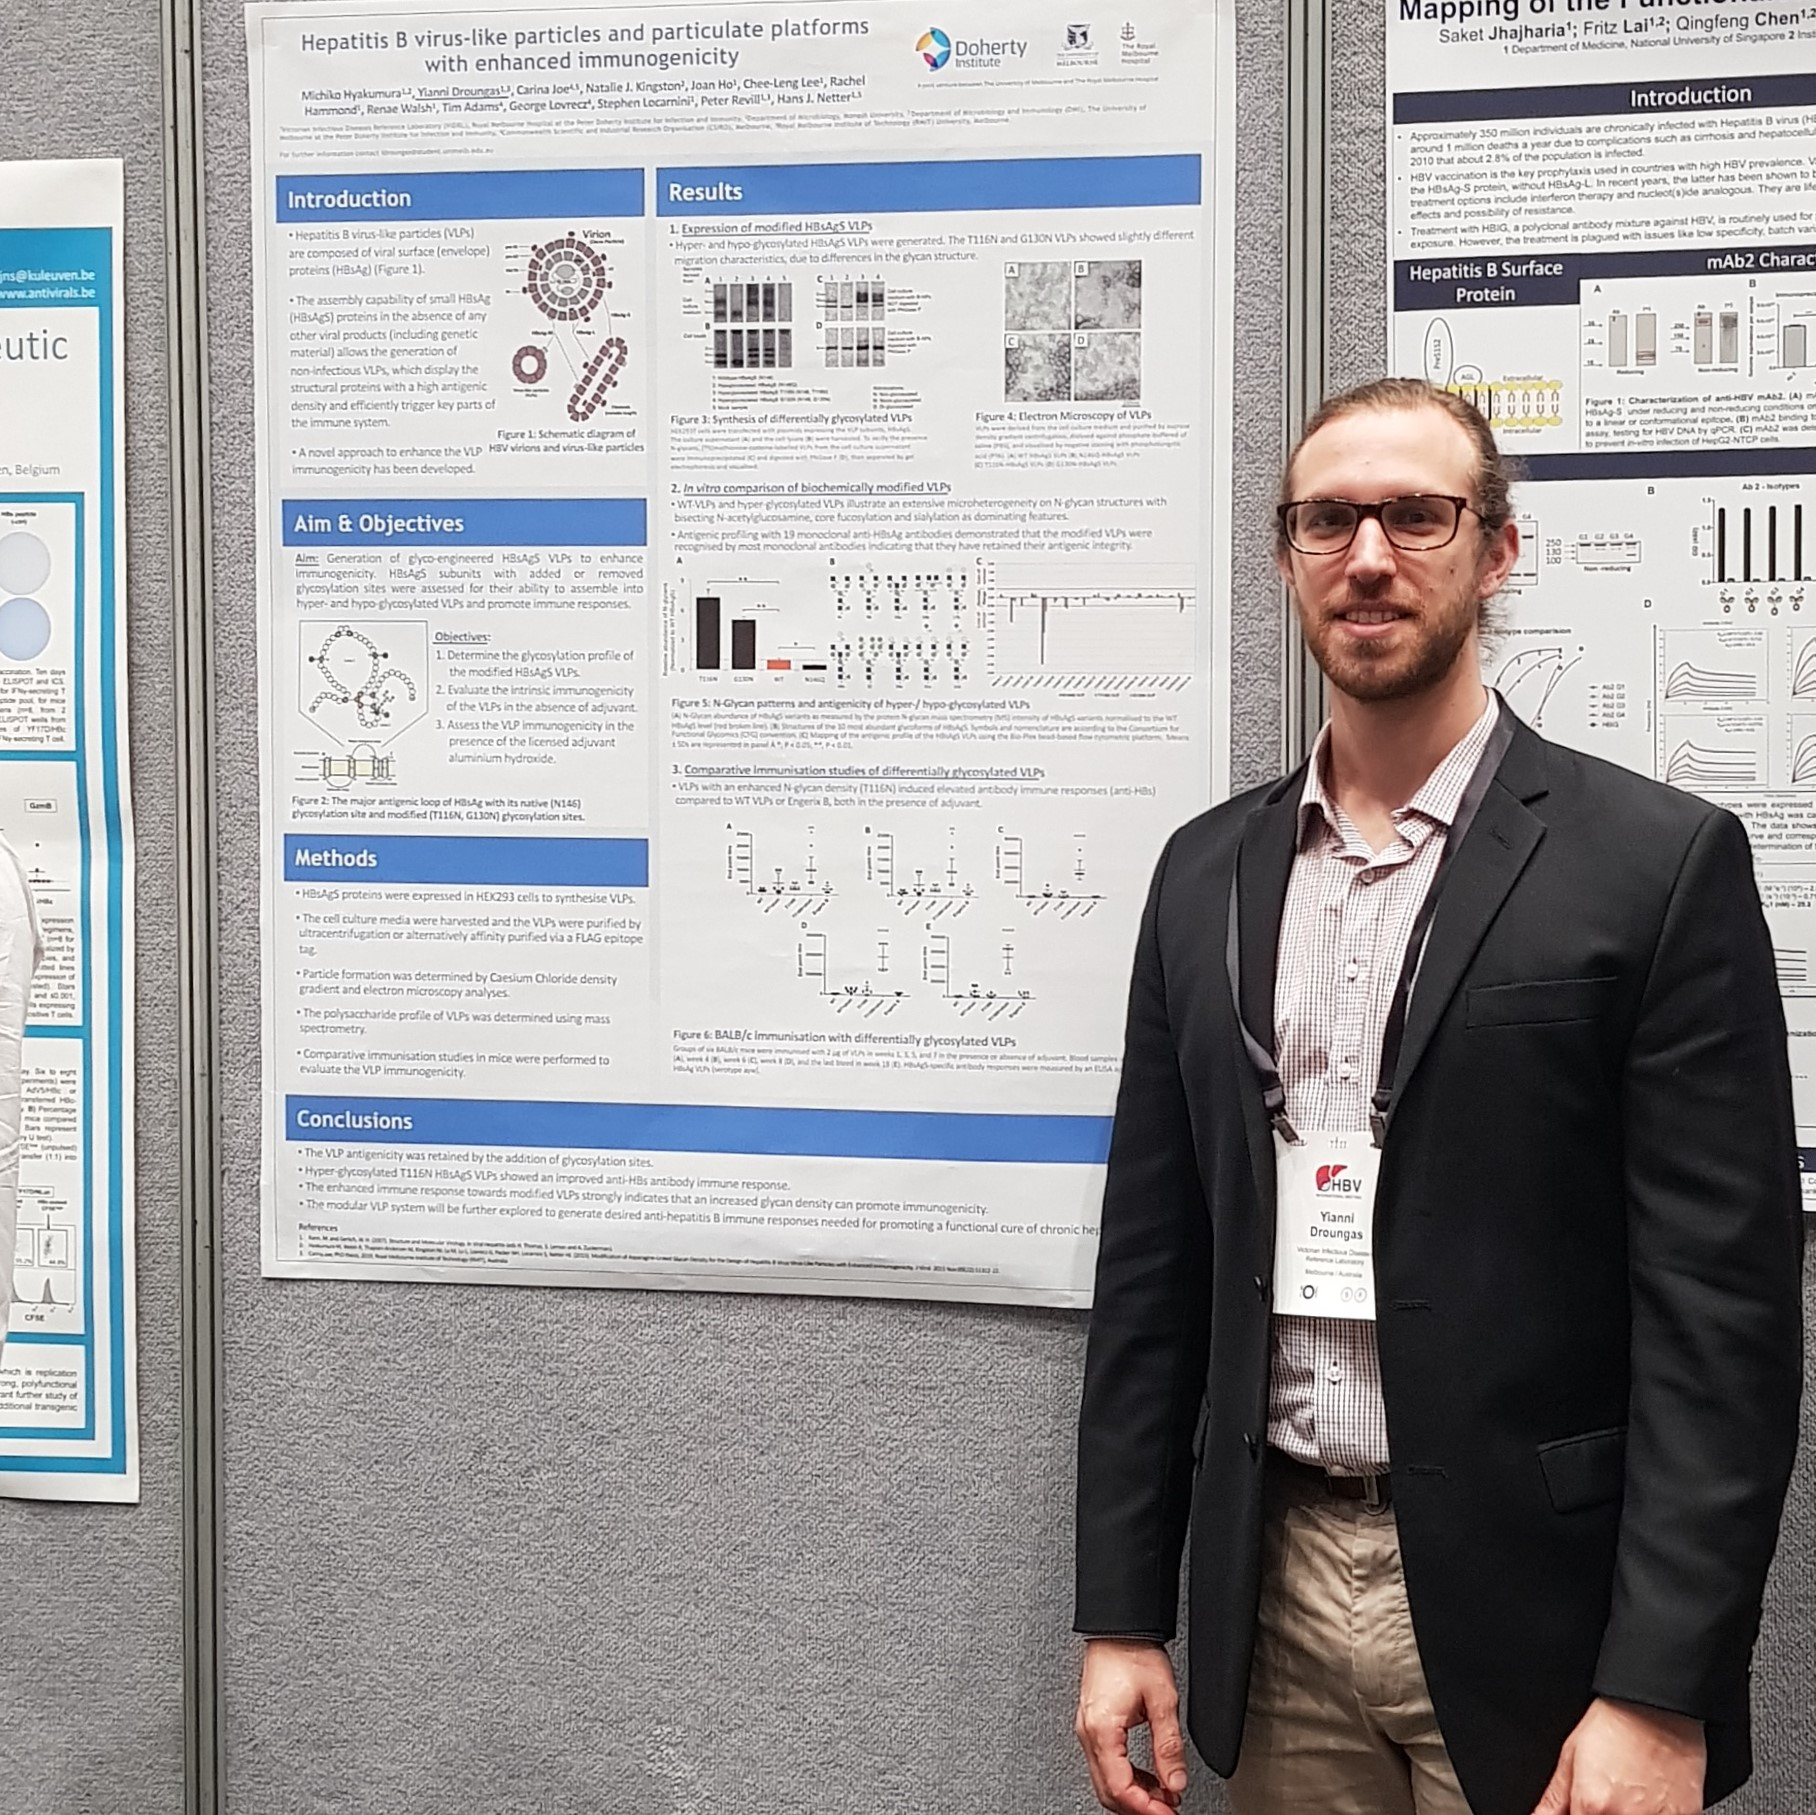 Yianni presents his poster on day 3 of the International HBV Meeting